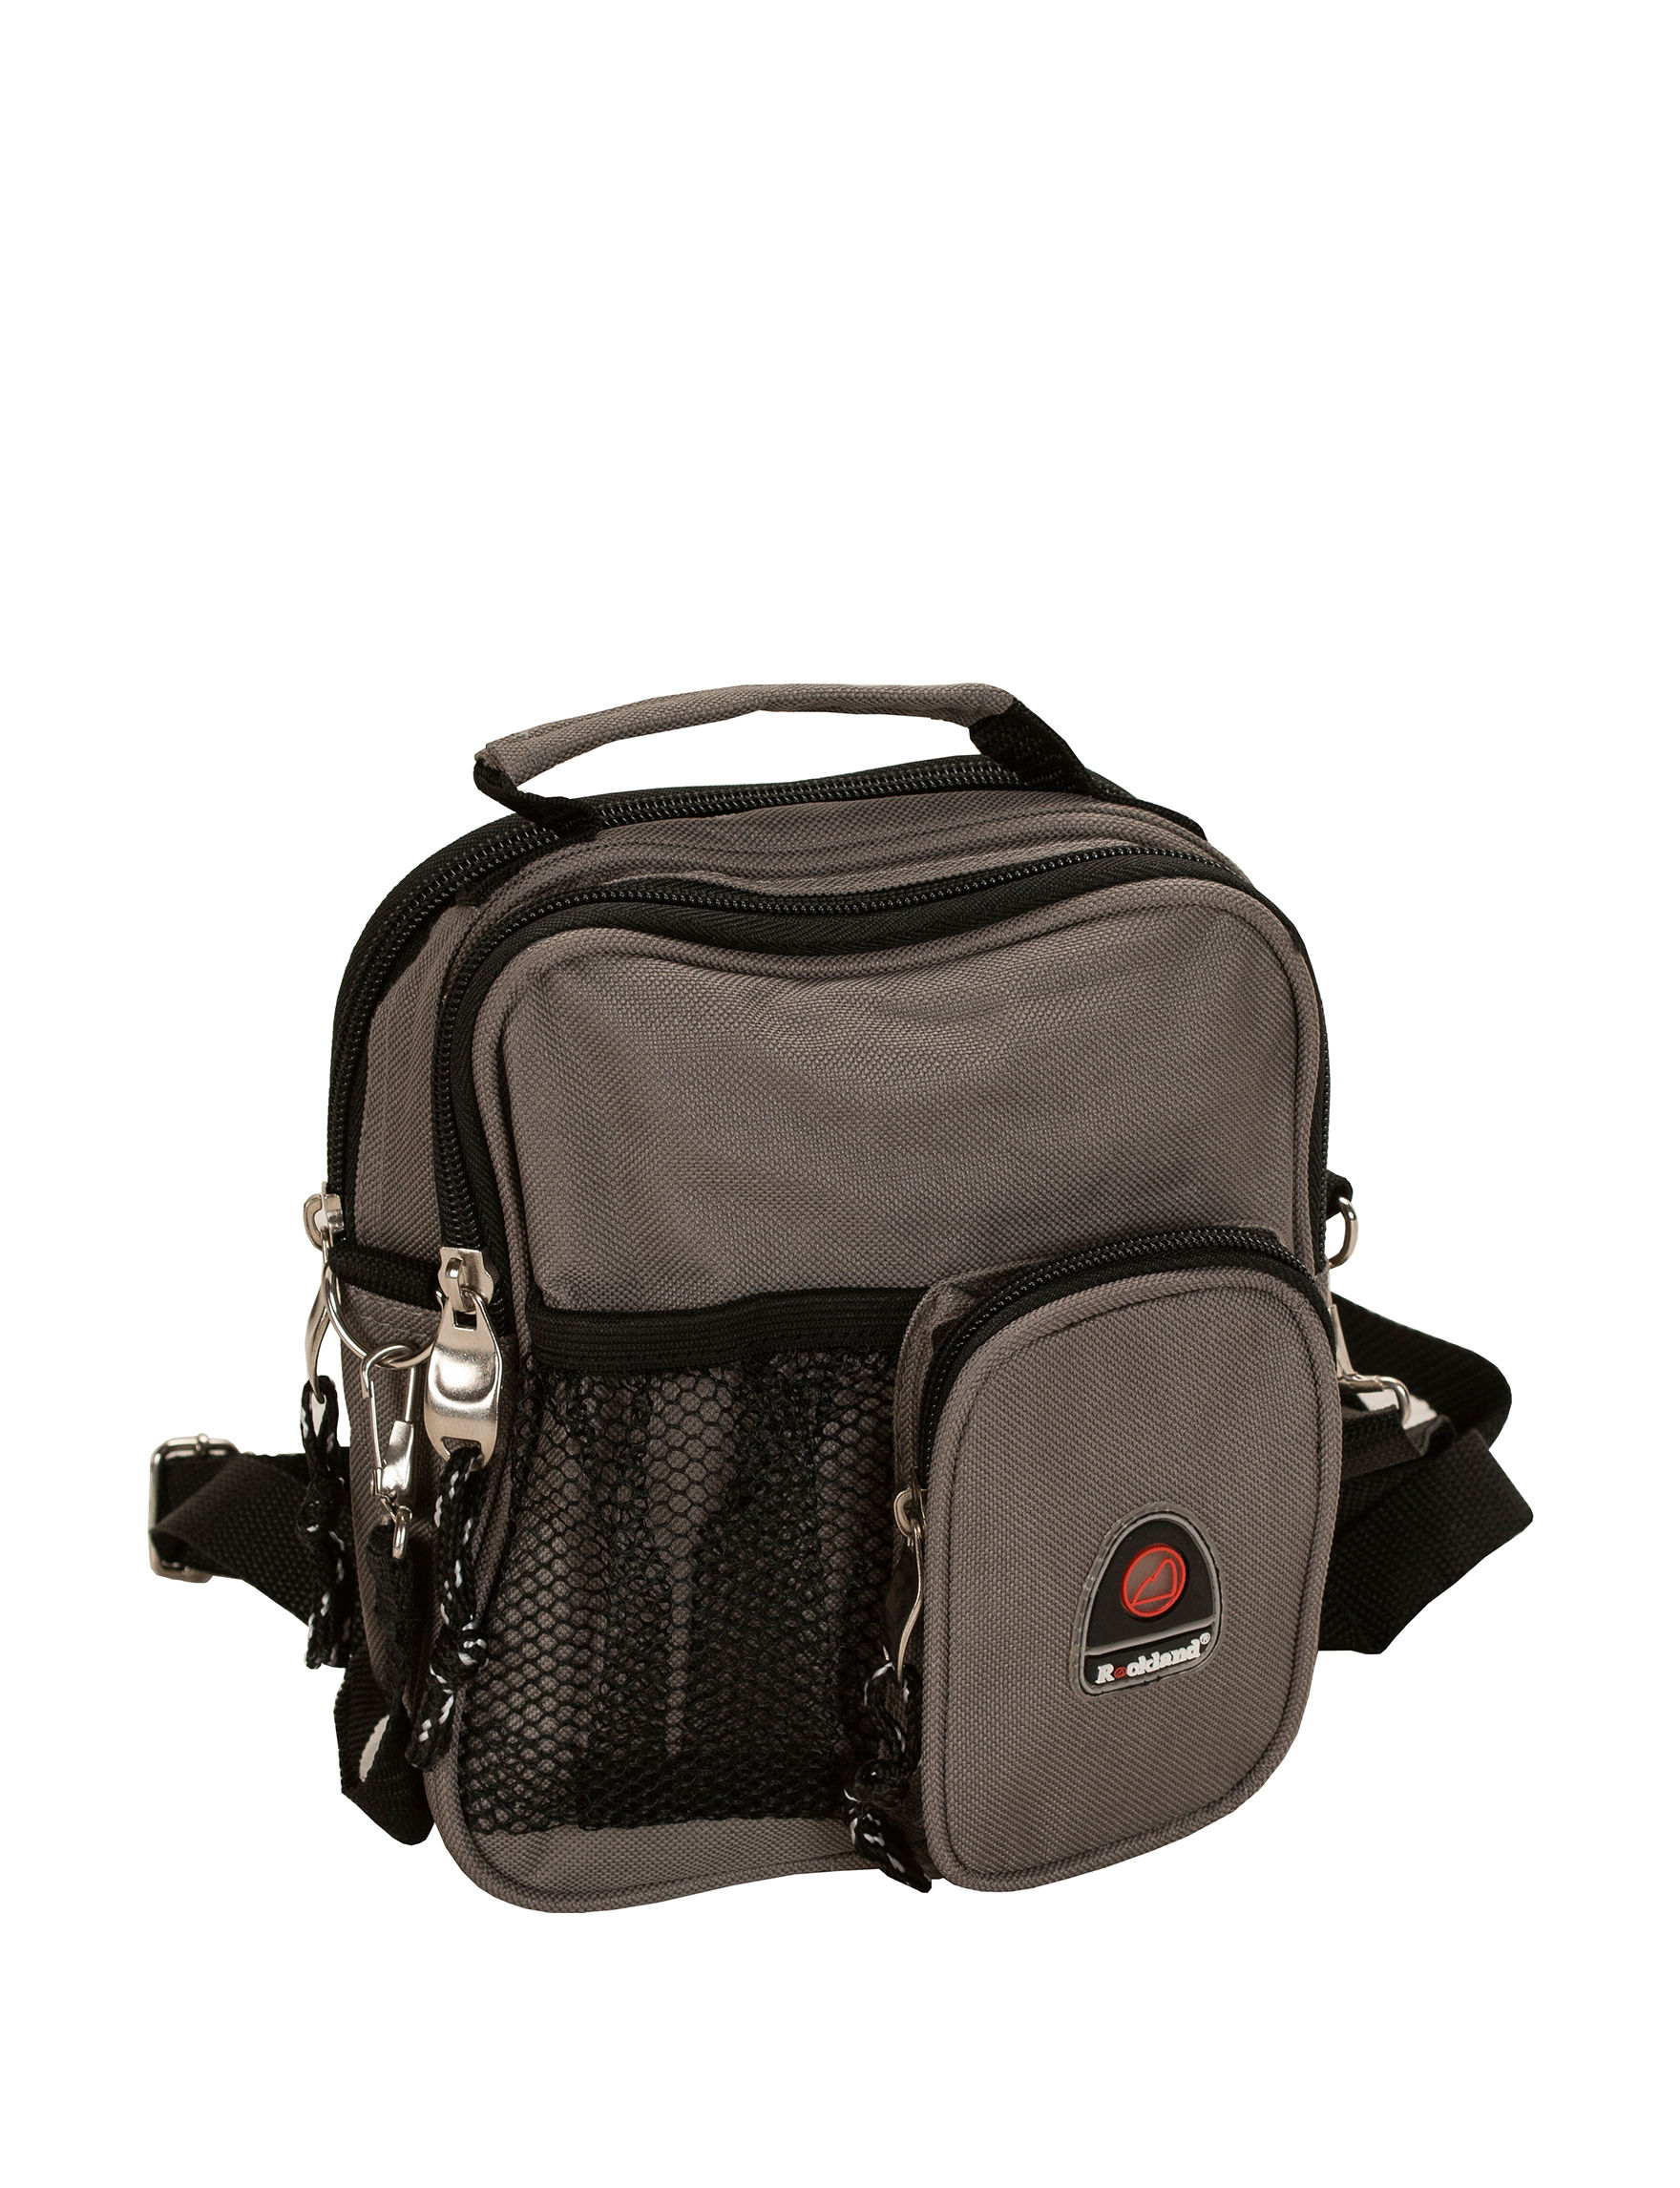 Rockland Chocolate Laptop & Messenger Bags